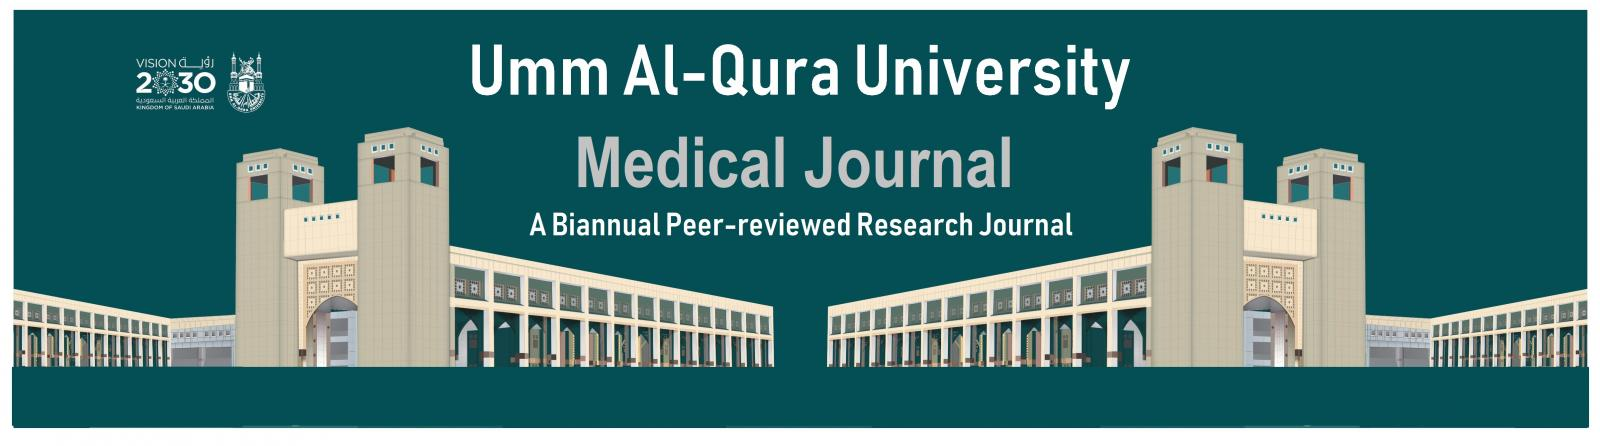 Medical Journal